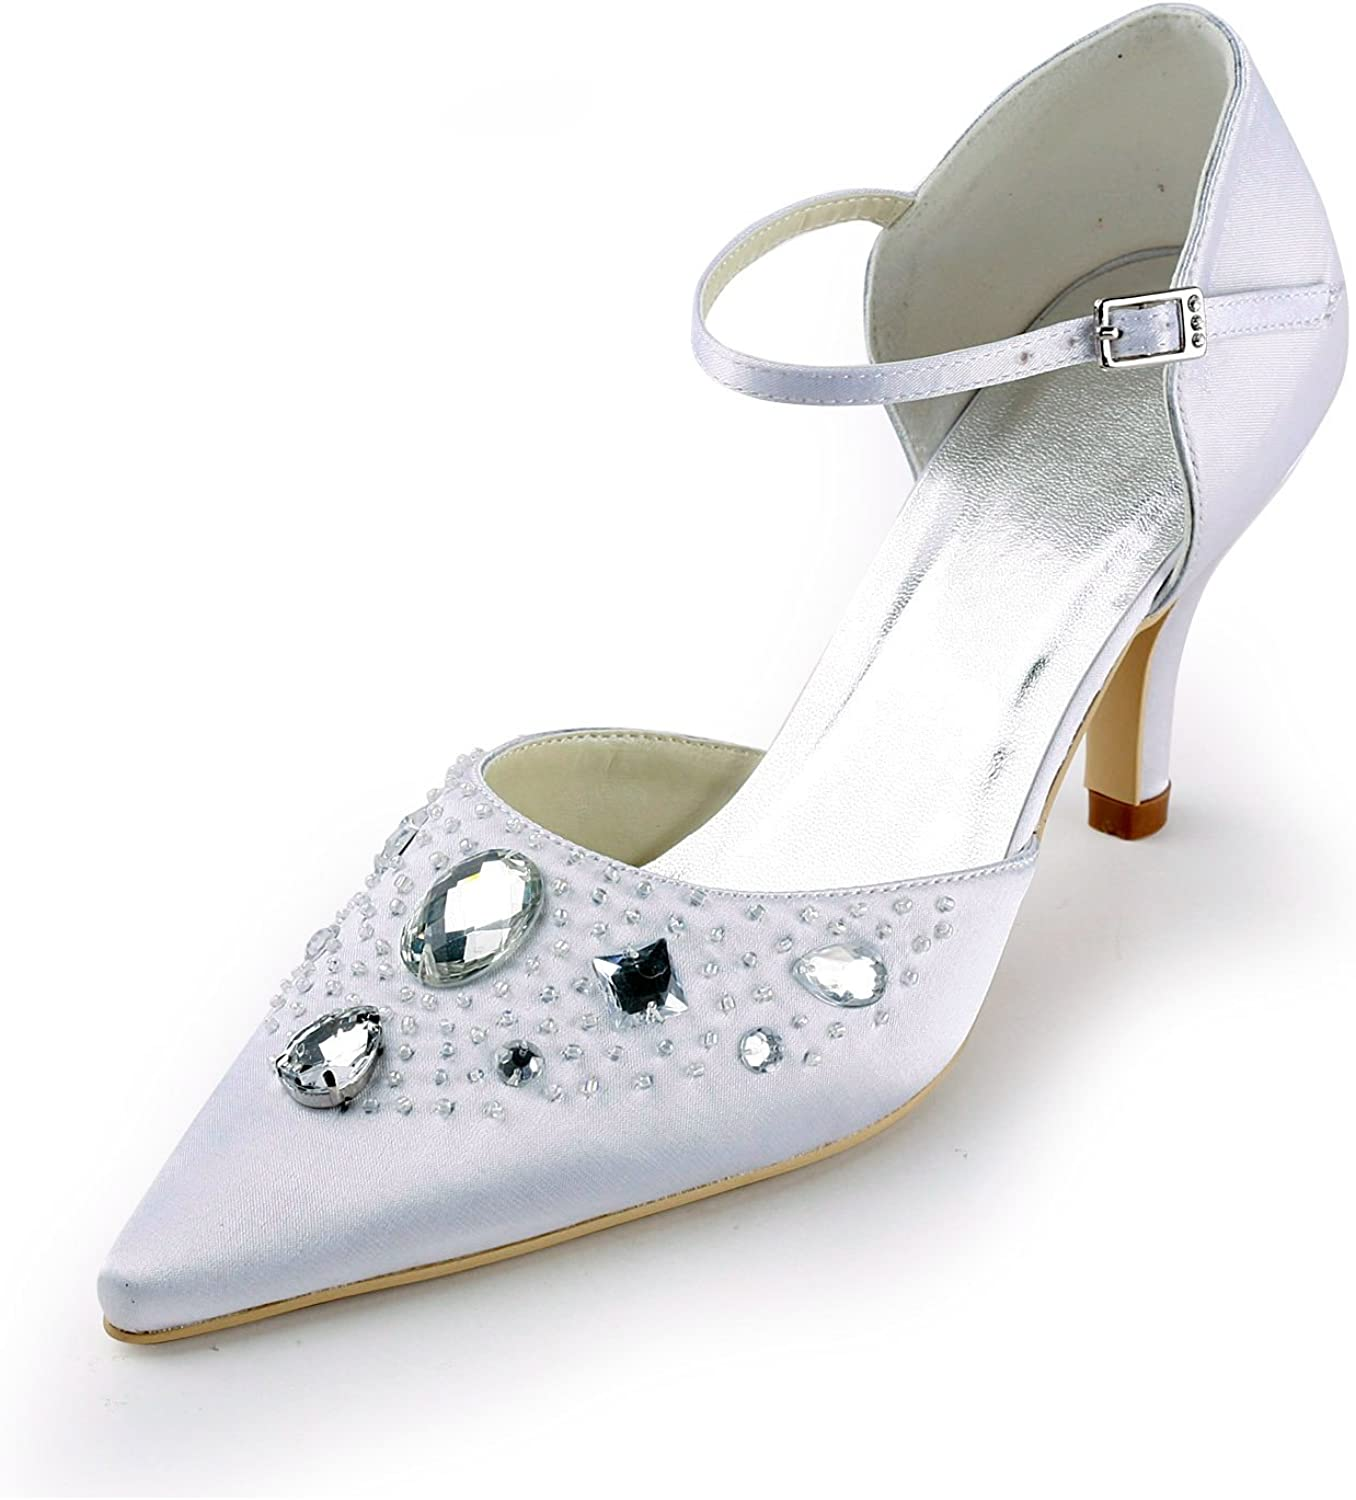 Zioso TMZ345 Women's Pointed Toe Satin Bridal Wedding Evening Formal Party Pumps shoes